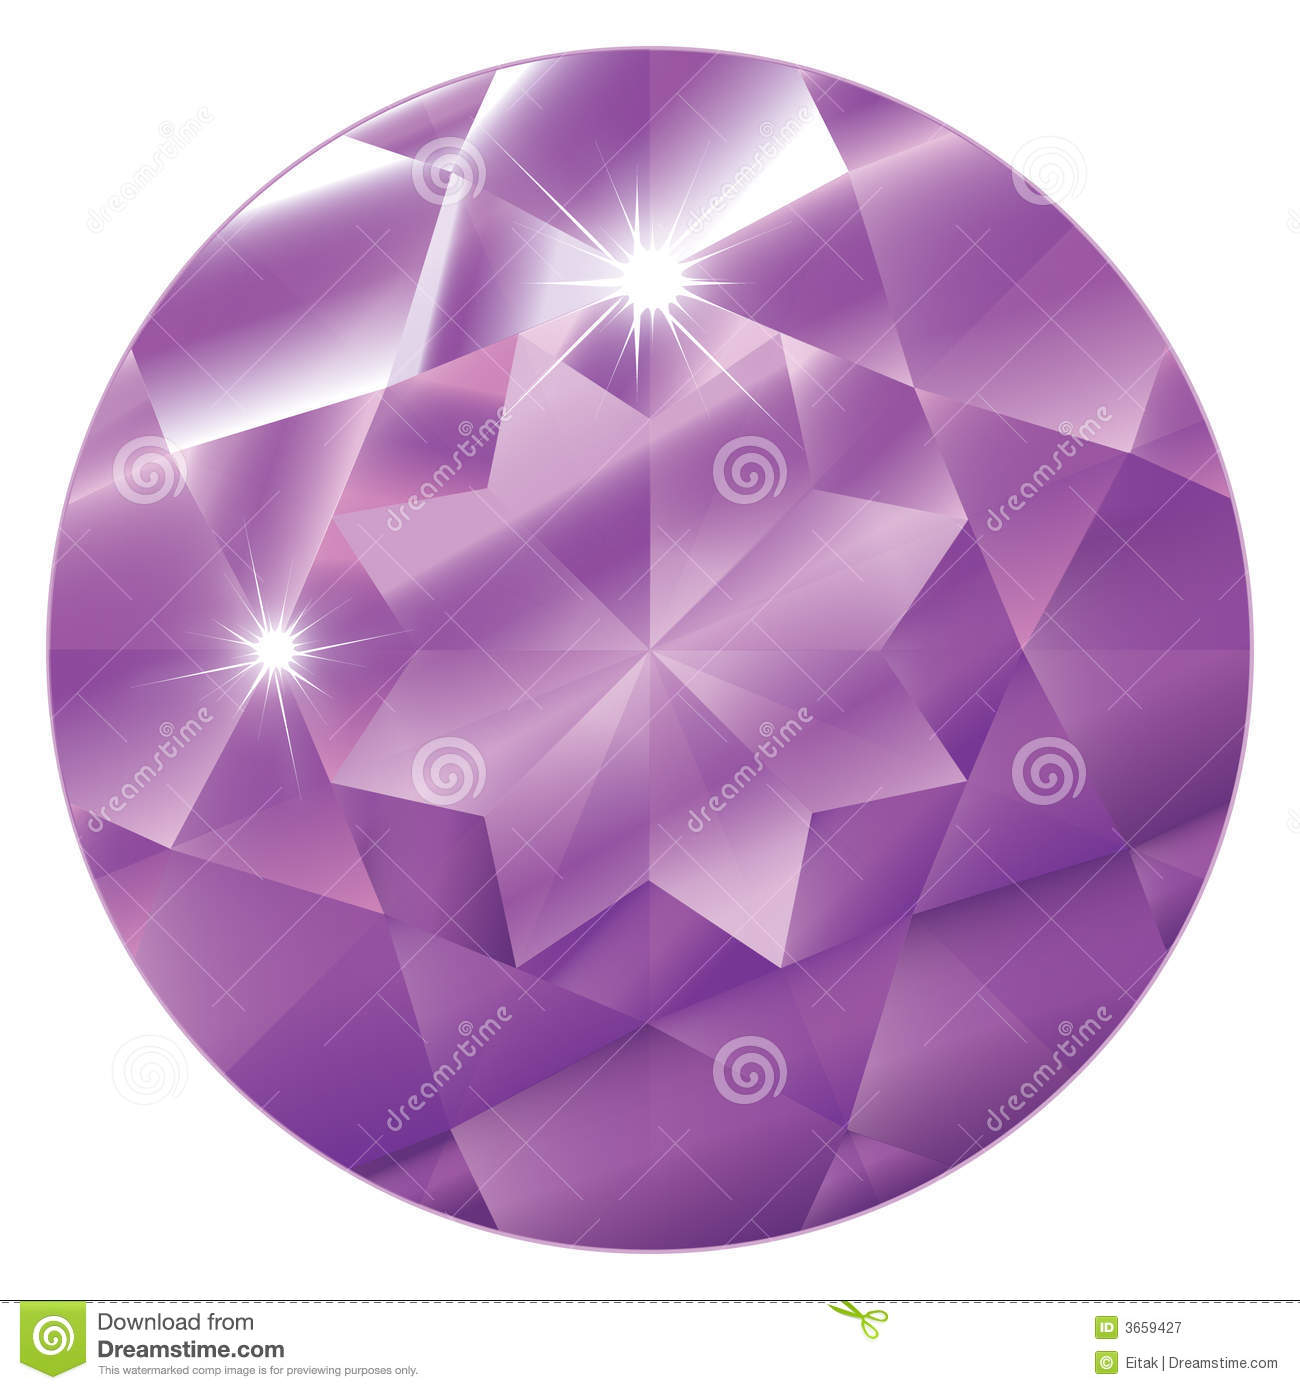 Amethyst clipart #8, Download drawings